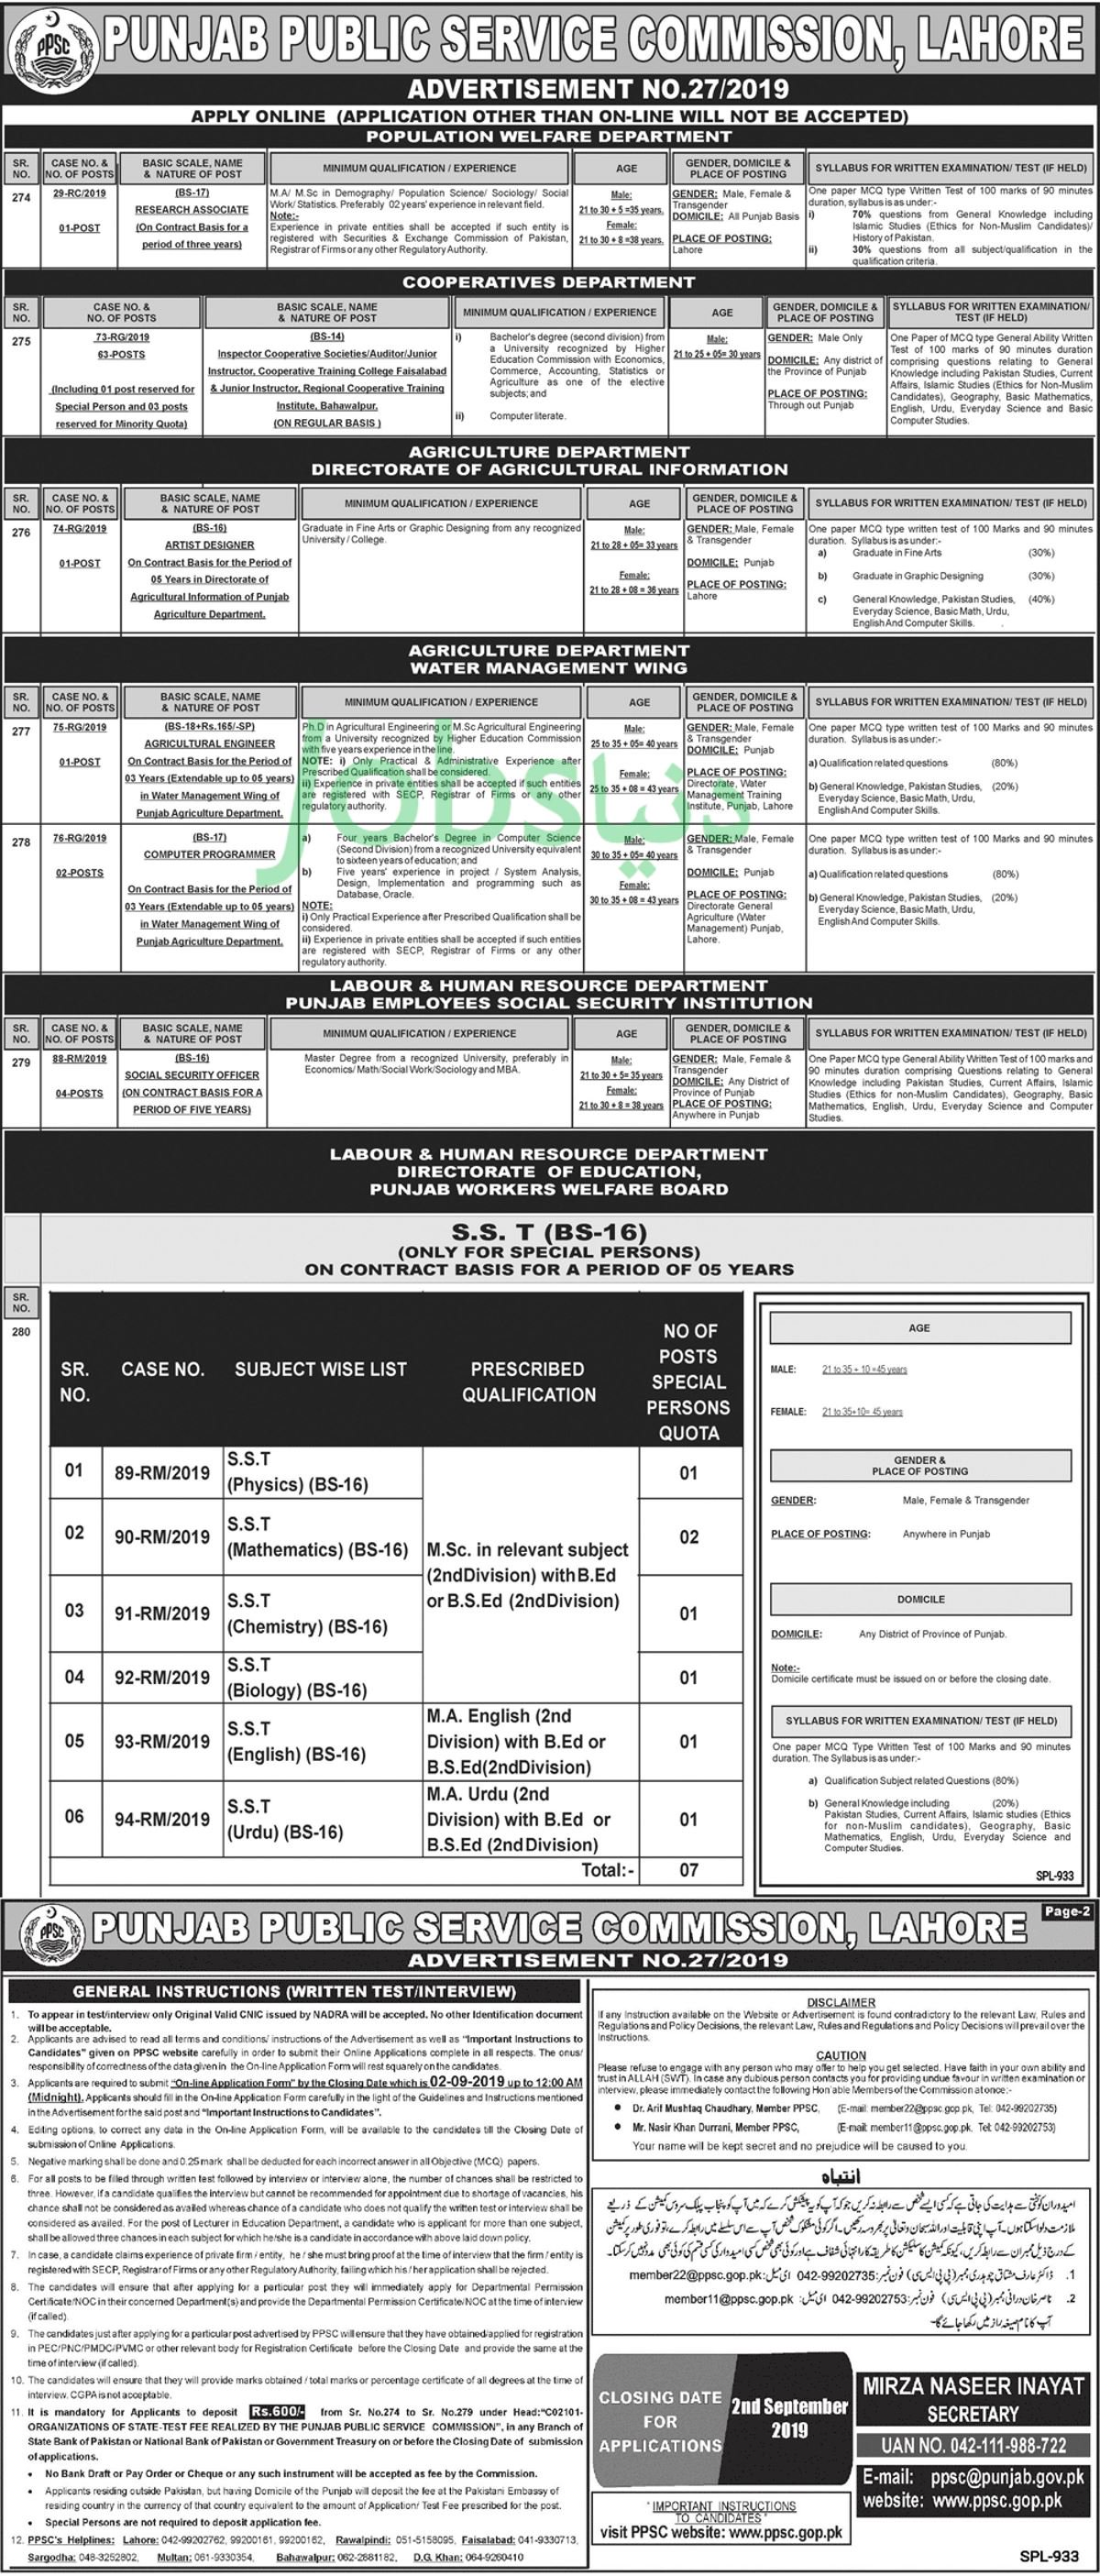 PPSC Jobs (27/2019): 79+ Inspectors, SST Teachers & Other in Punjab Government